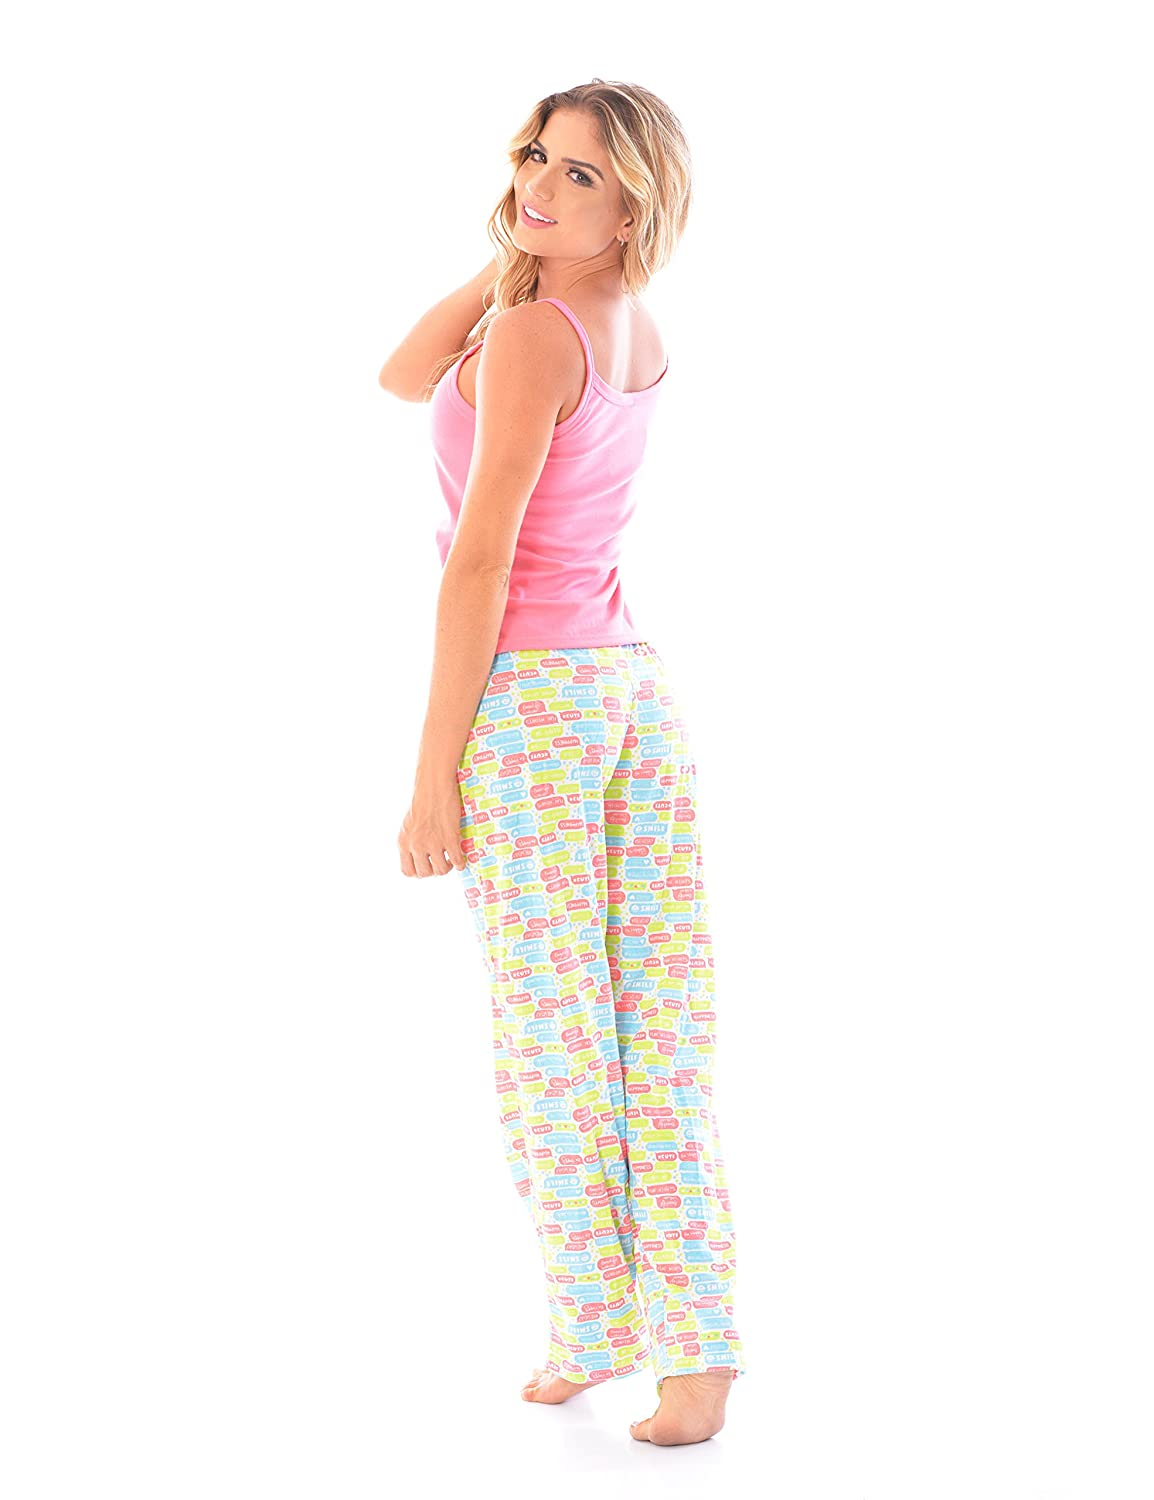 BELLA MIMOSA Womens Pajama Pants + Strap Camisole Tank Top Set/2 Piece PJ Matching Cami Top and Pants at Amazon Womens Clothing store: